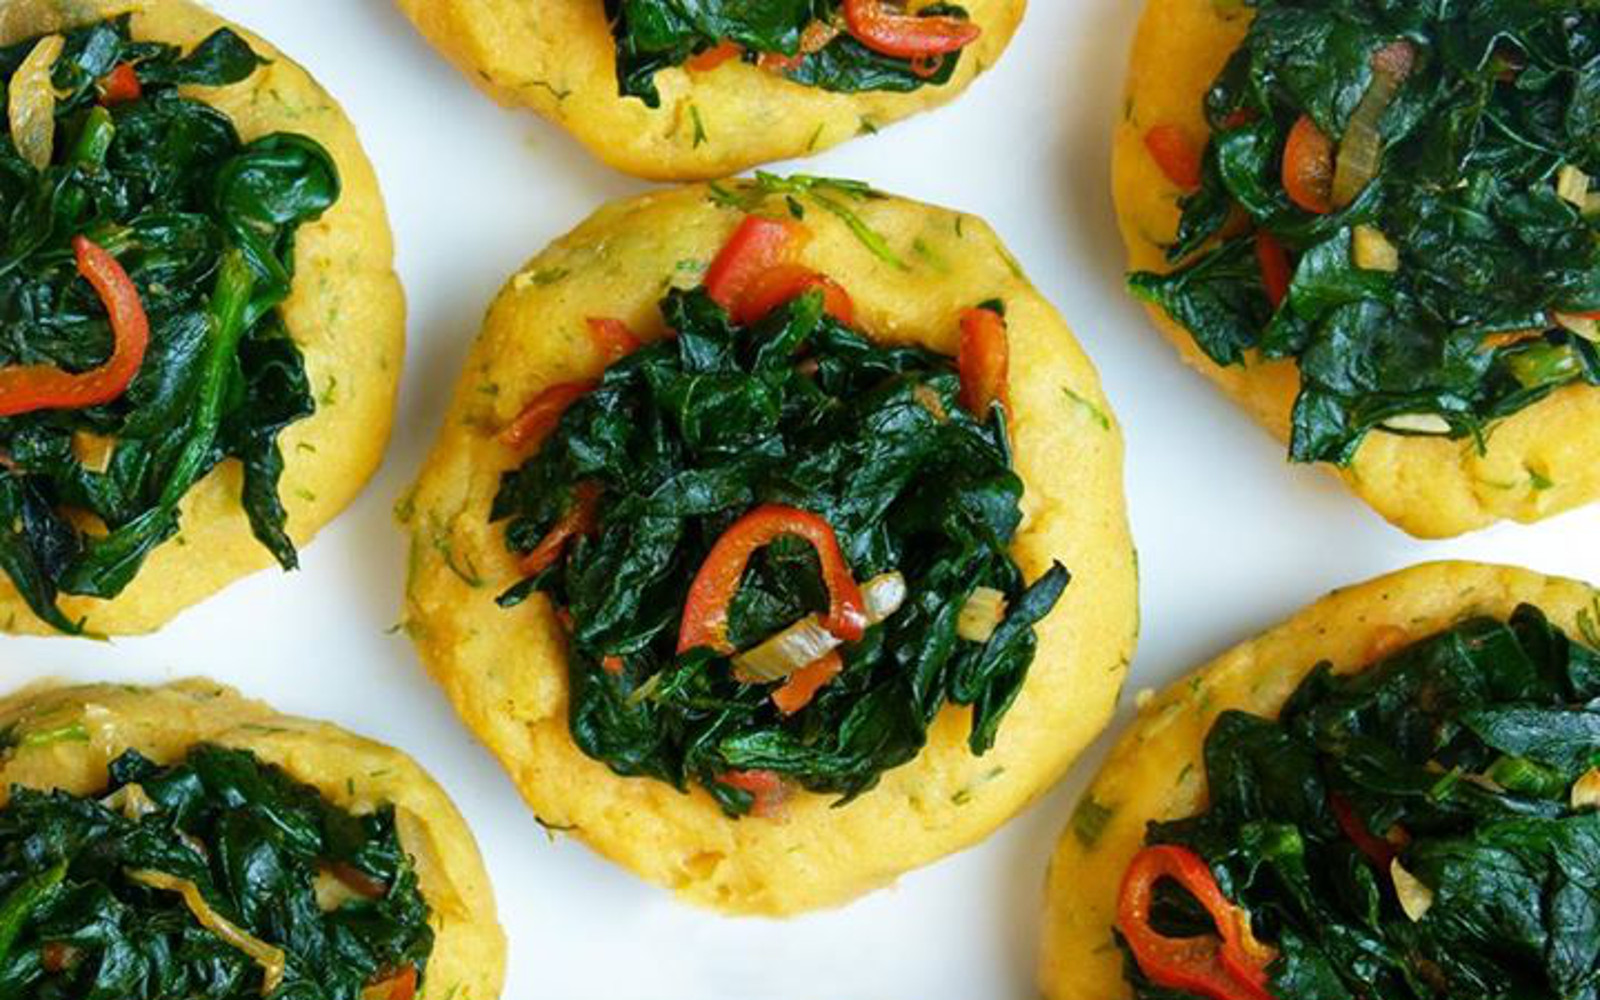 Vegan Grain-Free Spinach and Pepper Potato Bowls